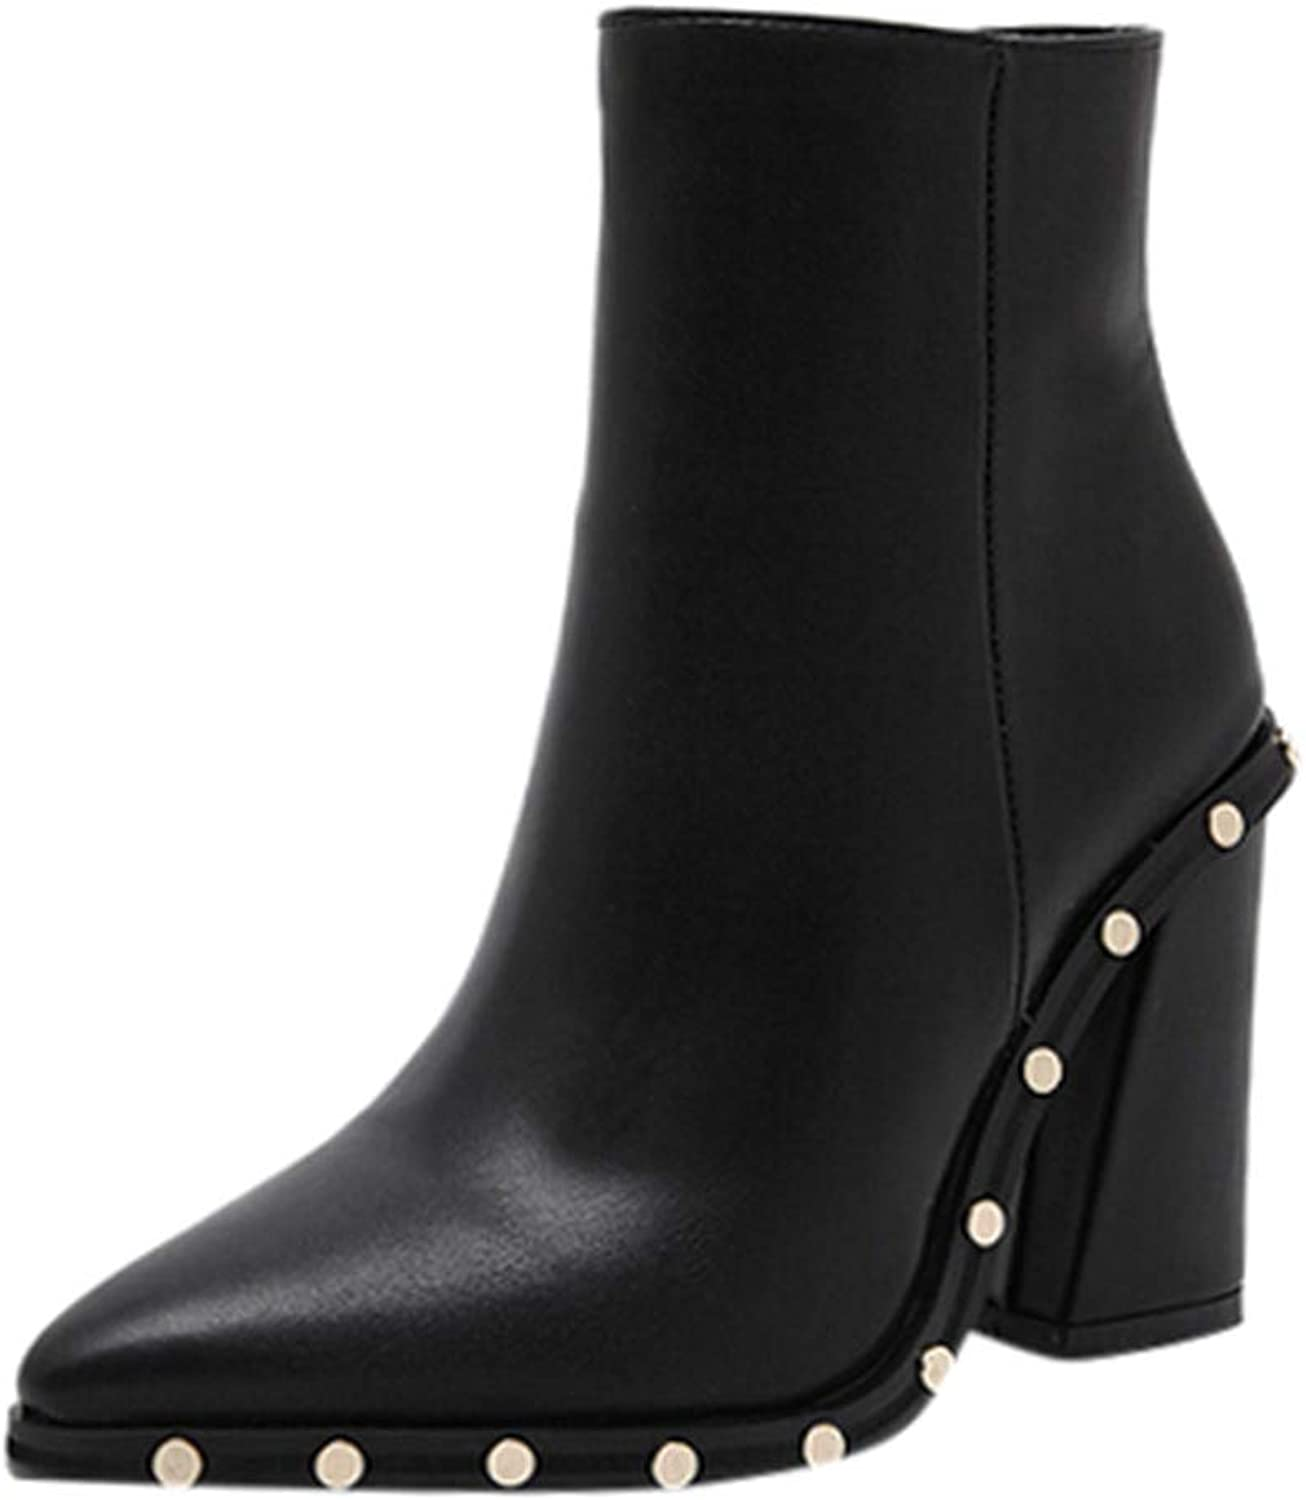 Morecome Women's Pointed Studded shoes Zipper High Heel Ankle Boots Leather Ankle Boots